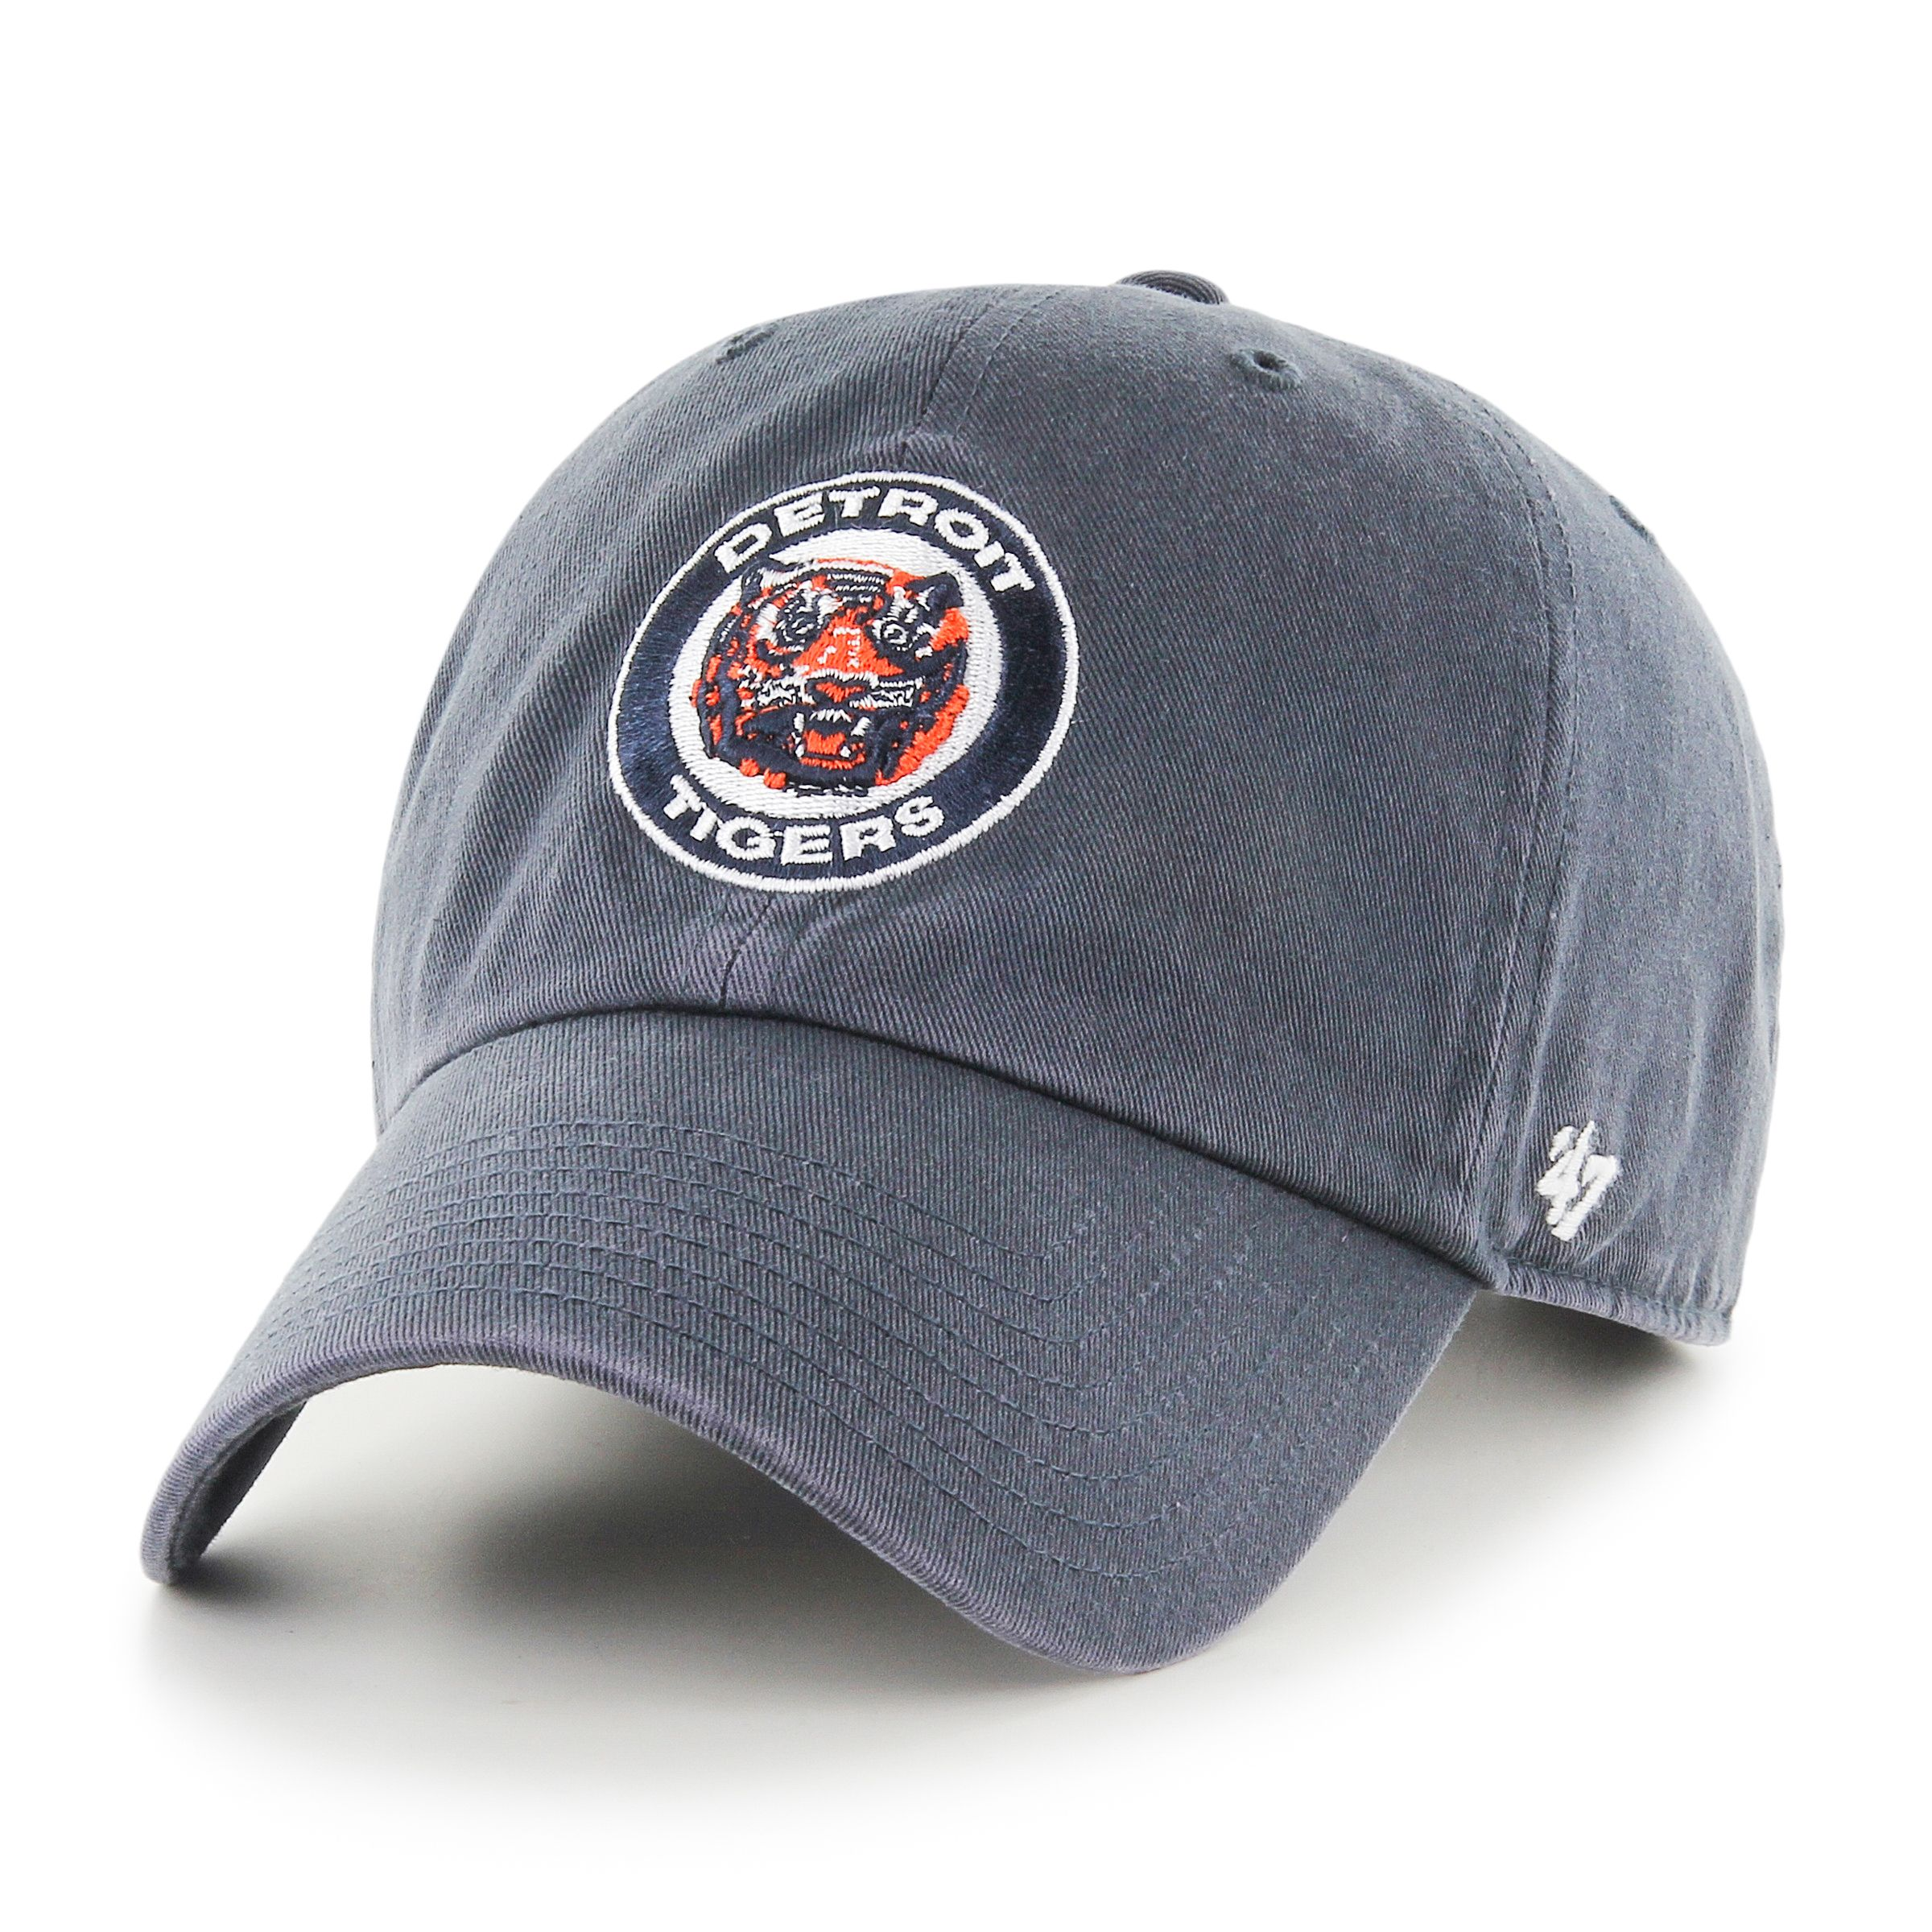 check out 2c702 314d3 Detroit Tigers 47 Brand Vintage Classic Clean Up Adjustable Hat - Low  Prices   Quick Shipping at Detroit Game Gear